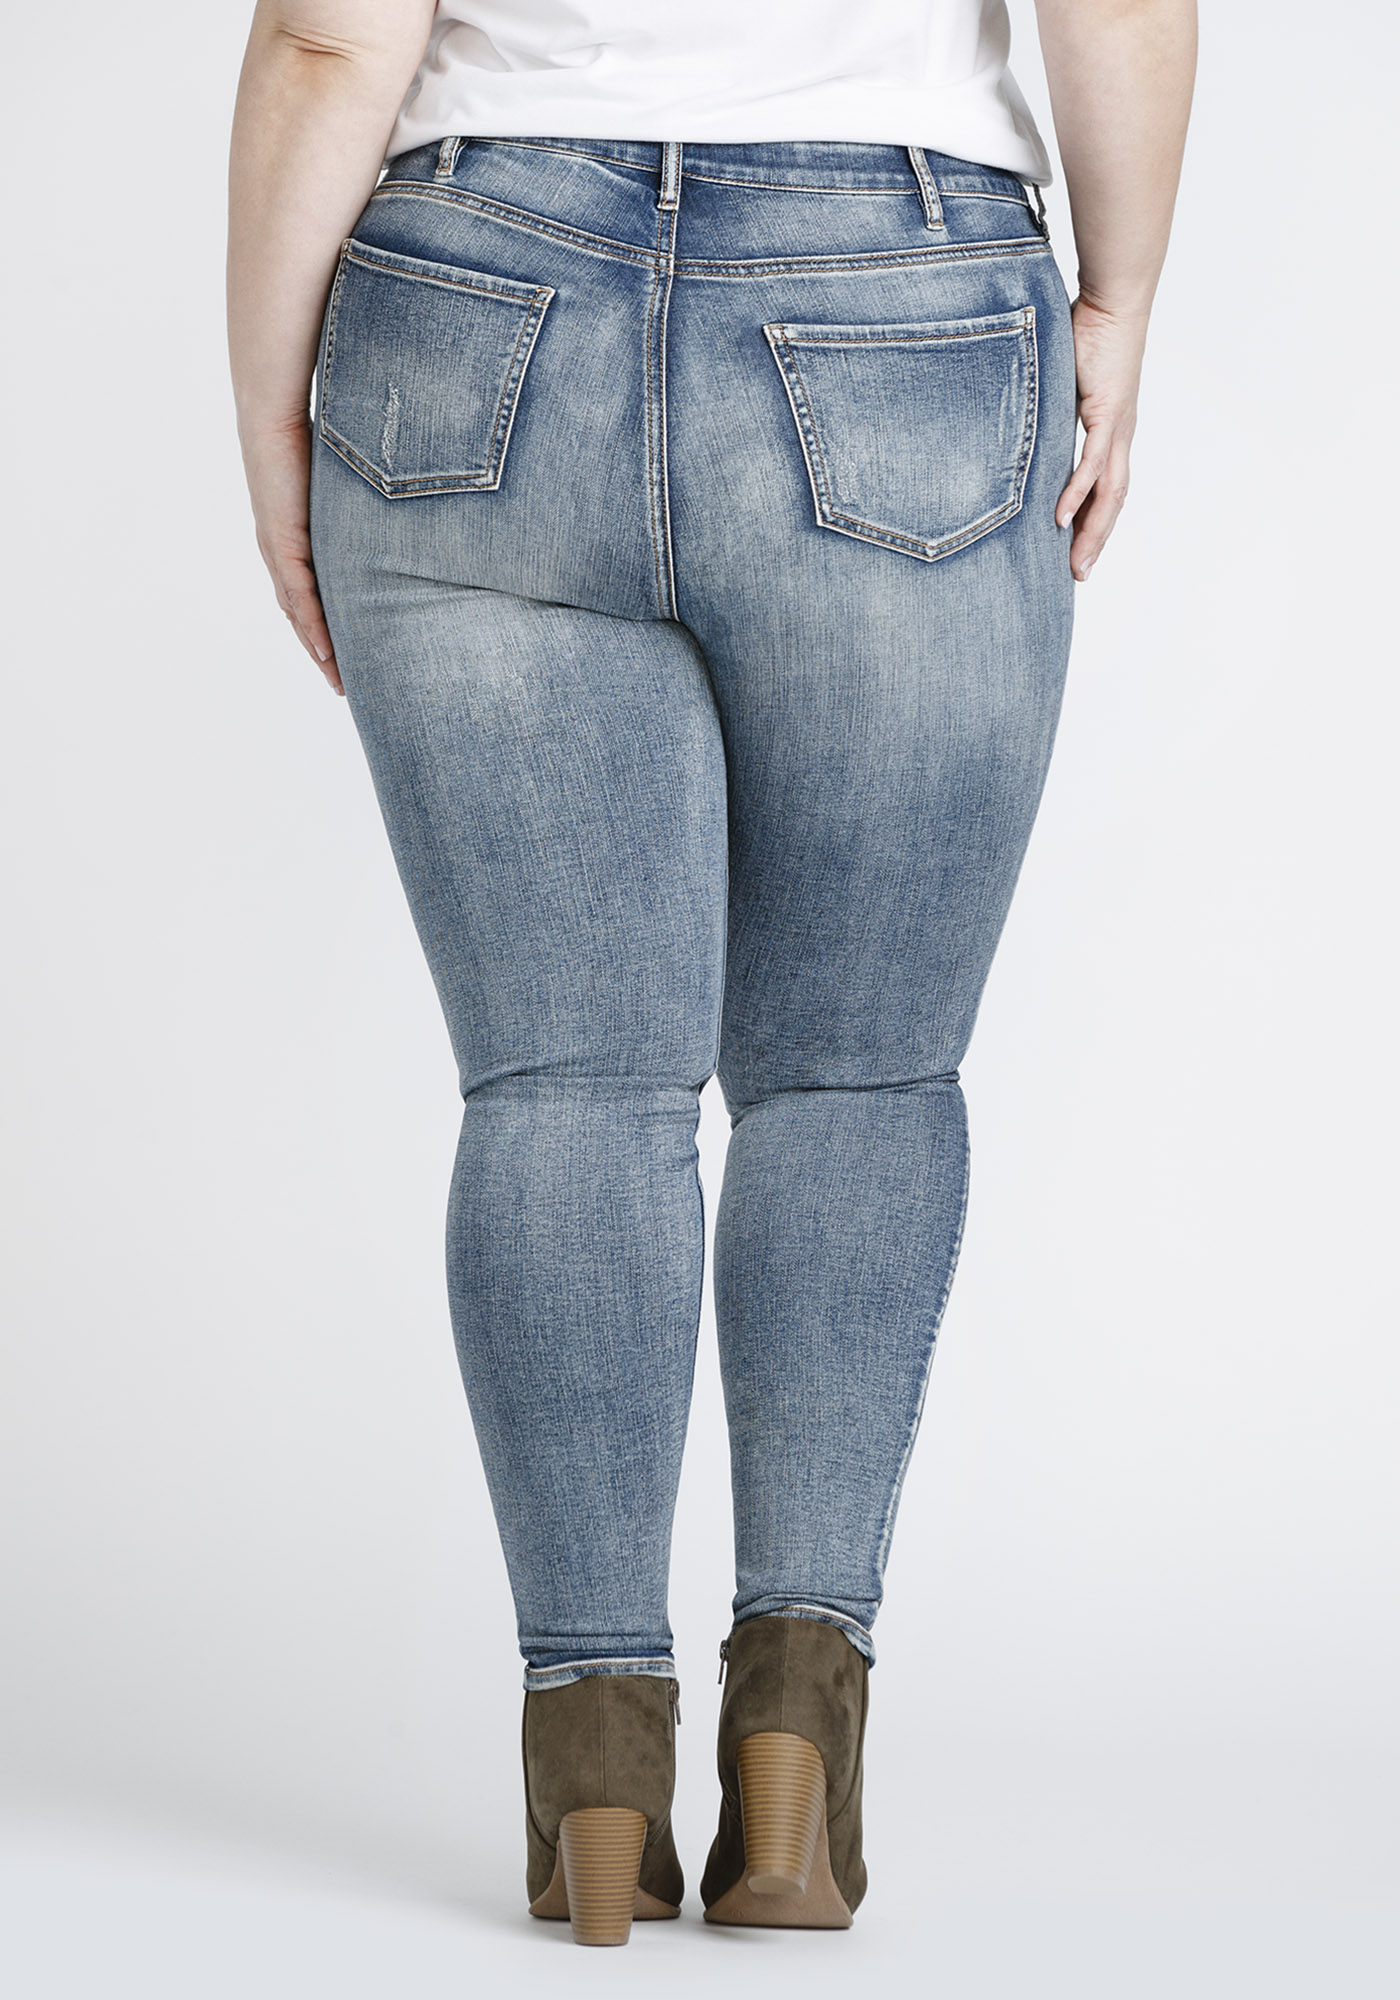 1d471a73389 ... Womens Plus Size Vintage Distressed Skinny Jeans